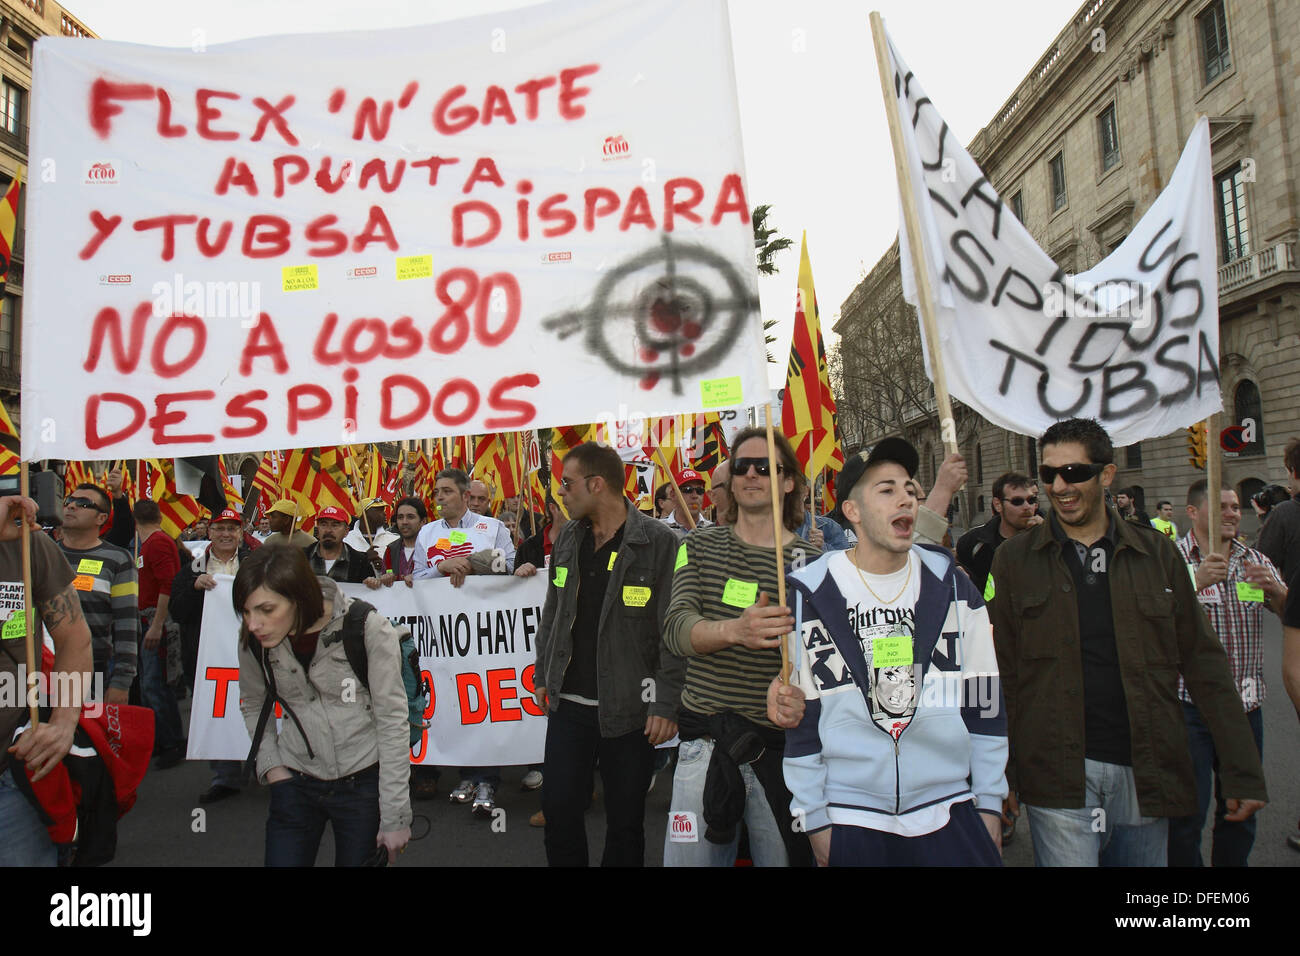 March against the economic crisis on March 14th, 2009. Barcelona, Catalonia, Spain - Stock Image